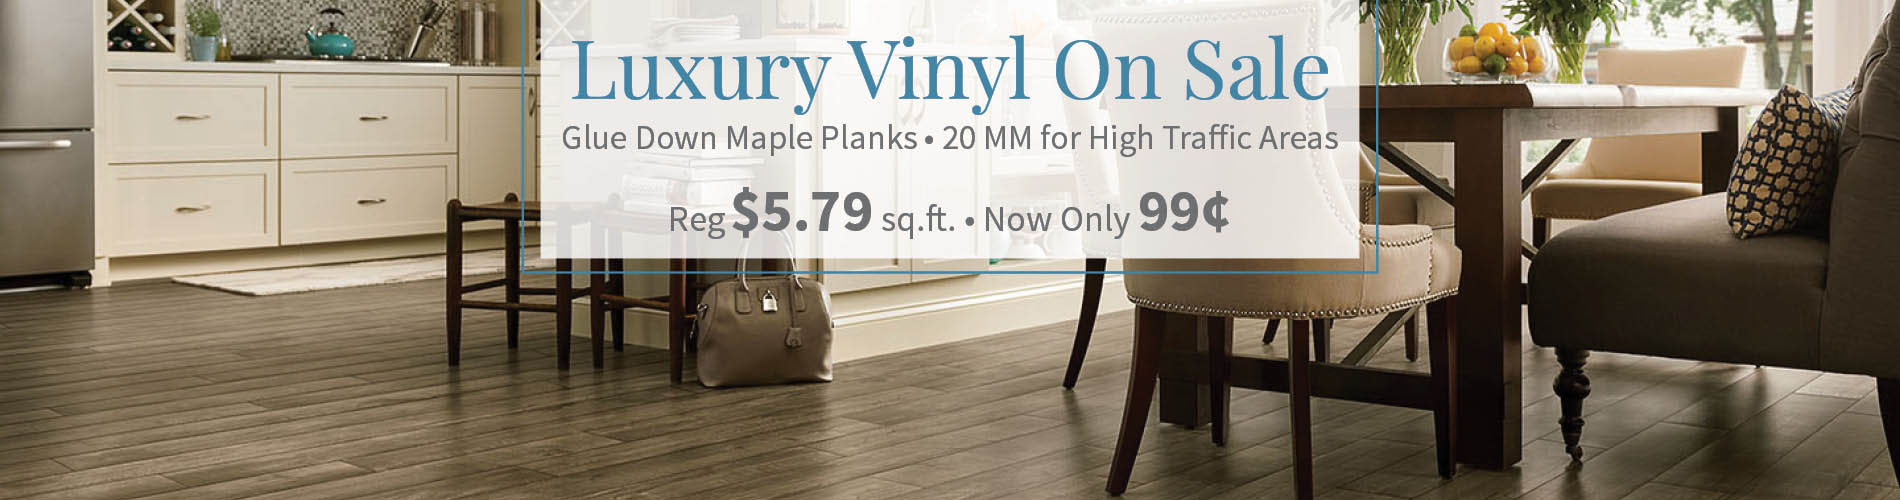 Glue down luxury vinyl maple planks on sale - 20mm for high traffic areas - Regularly $5.79, now only 99¢!